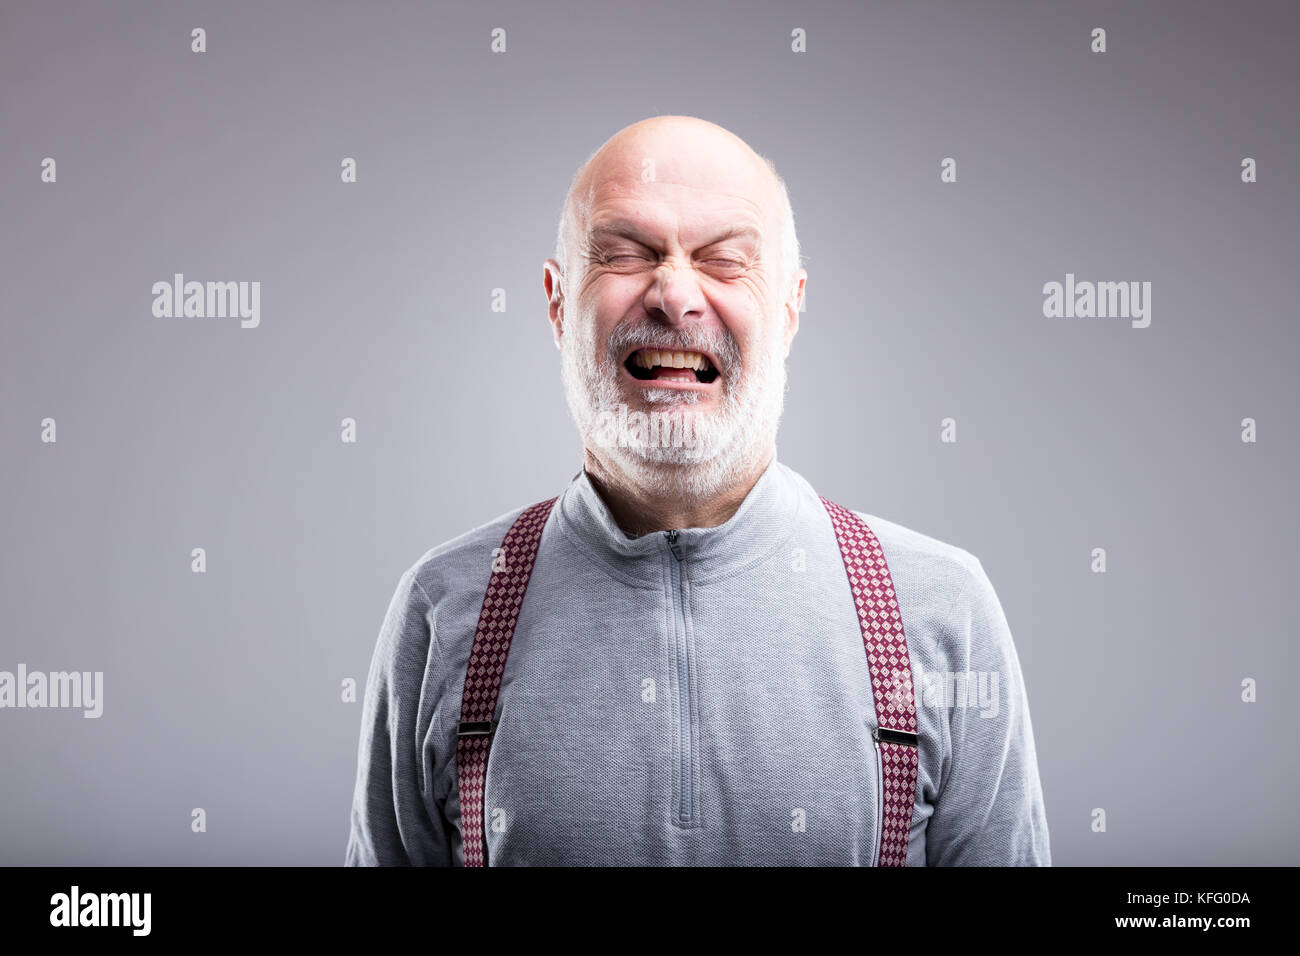 teatrical exaggerated expression of an old man crying - Stock Image